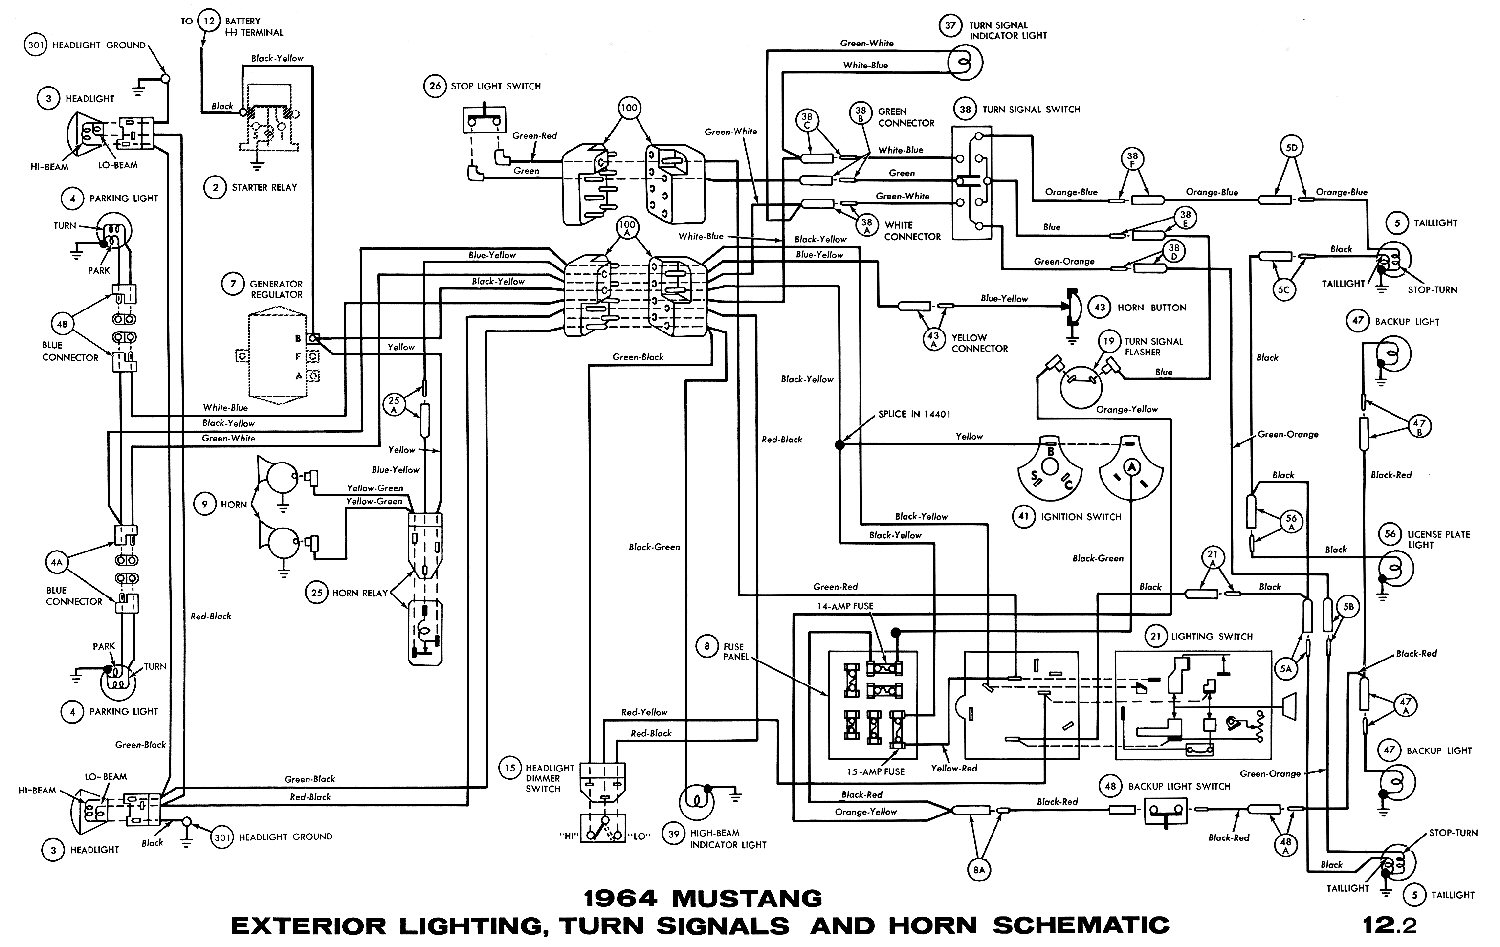 DIAGRAM] 67 Mustang Charge Light Wiring Diagram FULL Version HD Quality Wiring  Diagram - AAWIRINGLOOM.MAMI-WATA.FRMami Wata